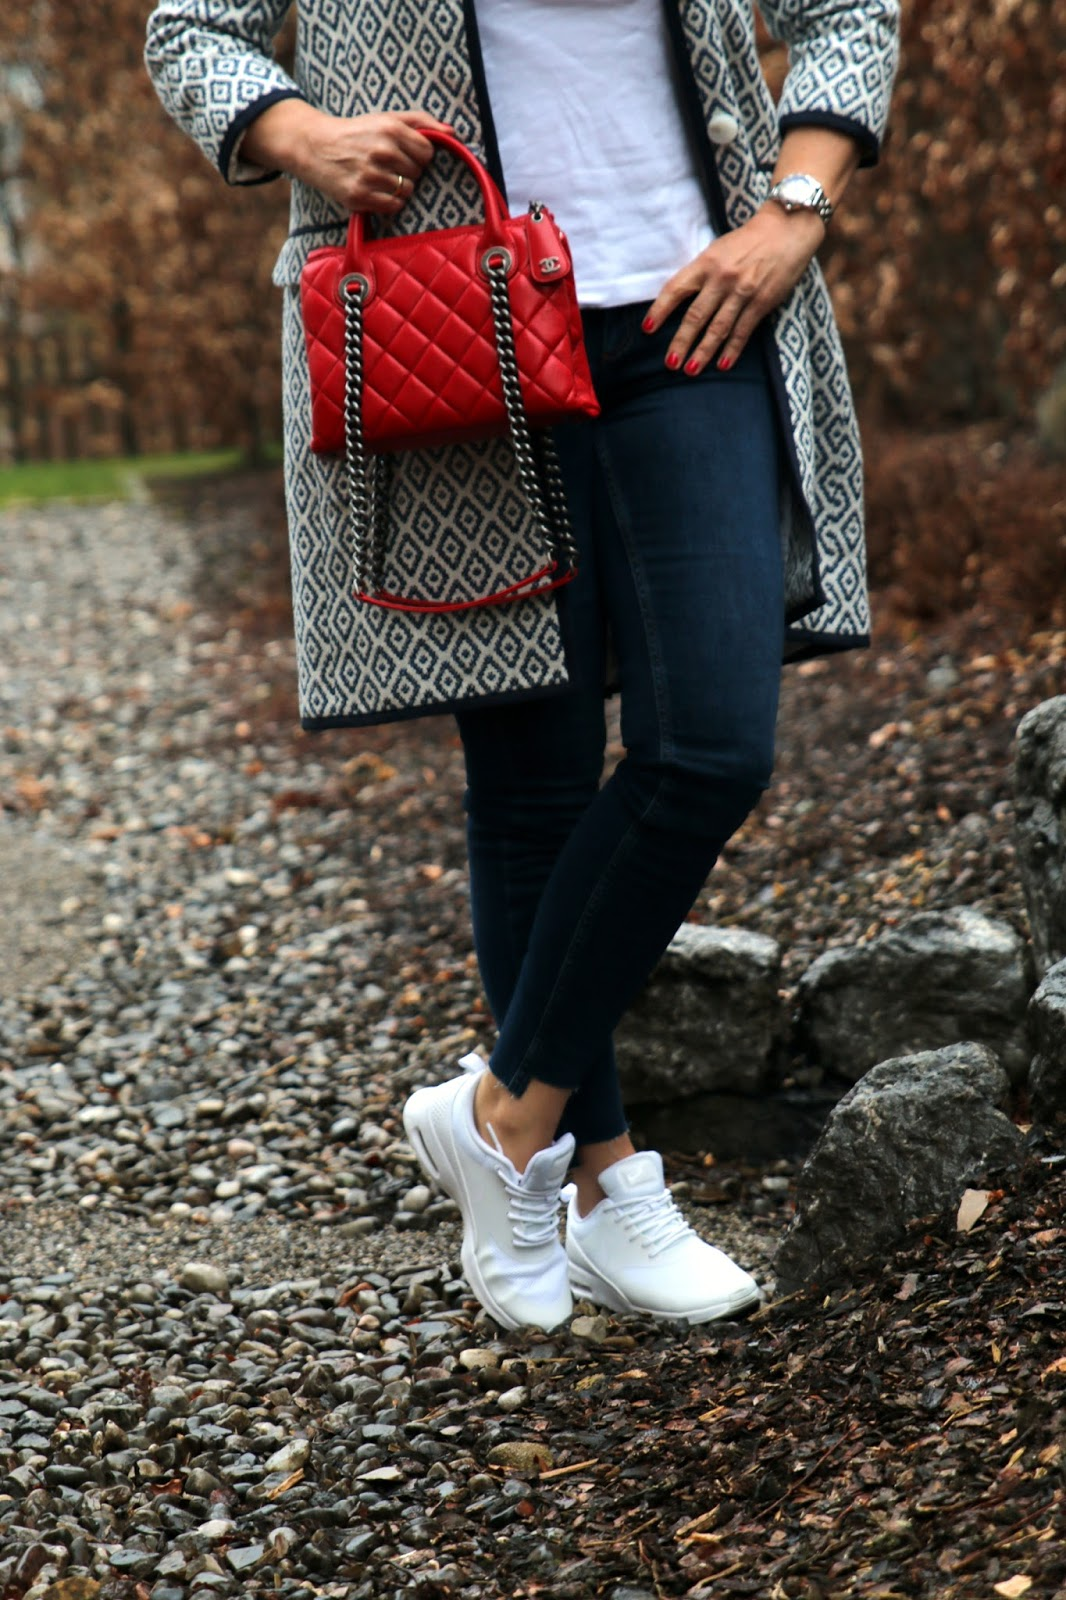 red Chanel Shoppingbag, white Nike sneakers, denims with open seam